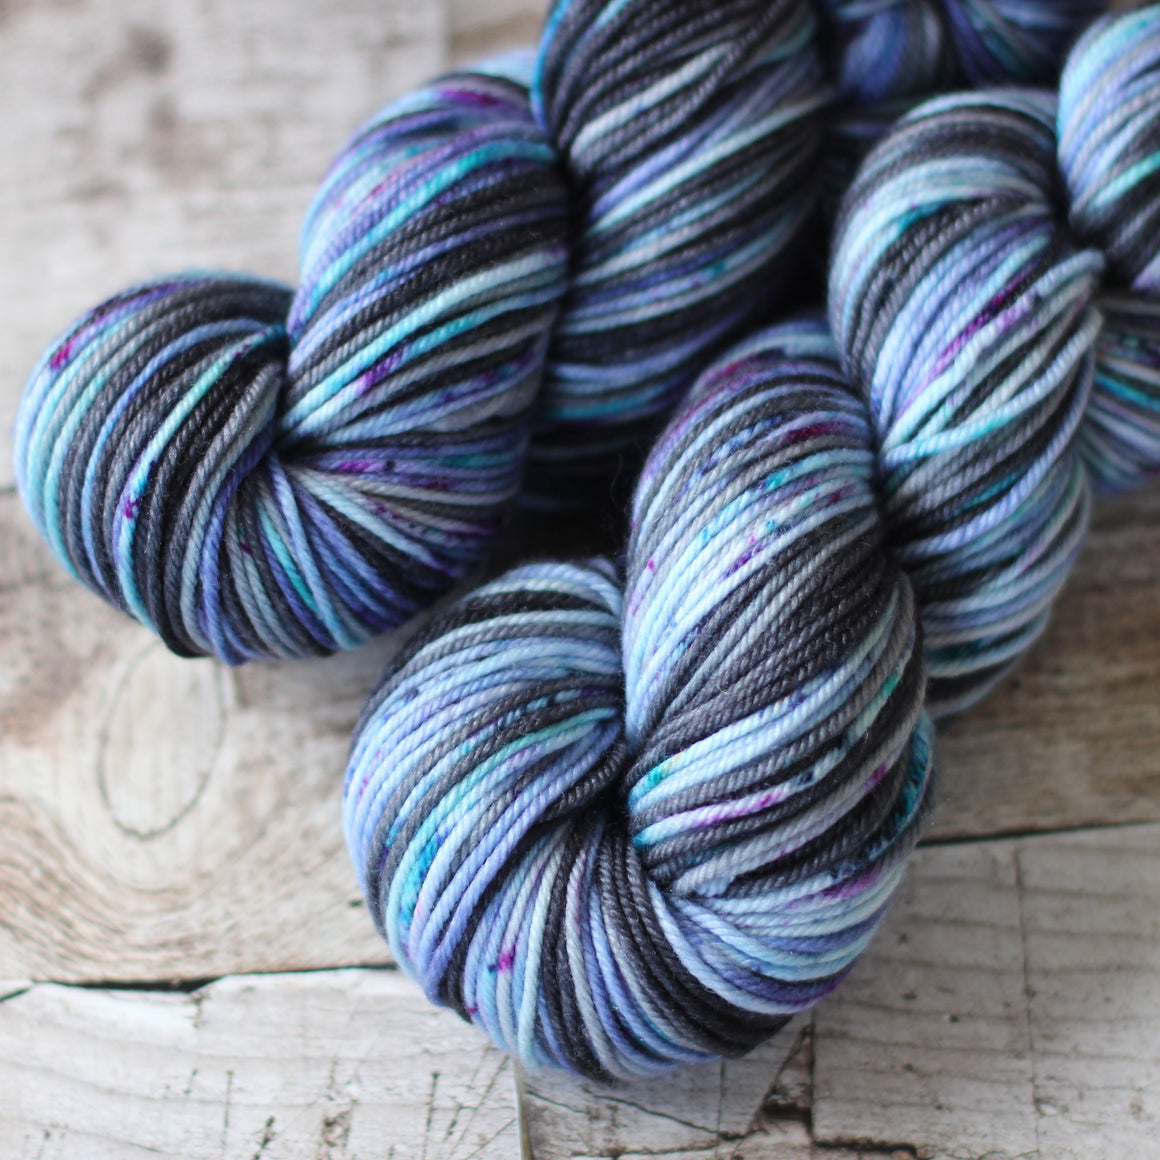 Australian Superwash Merino / Nylon / Silk 8ply Yarn - James